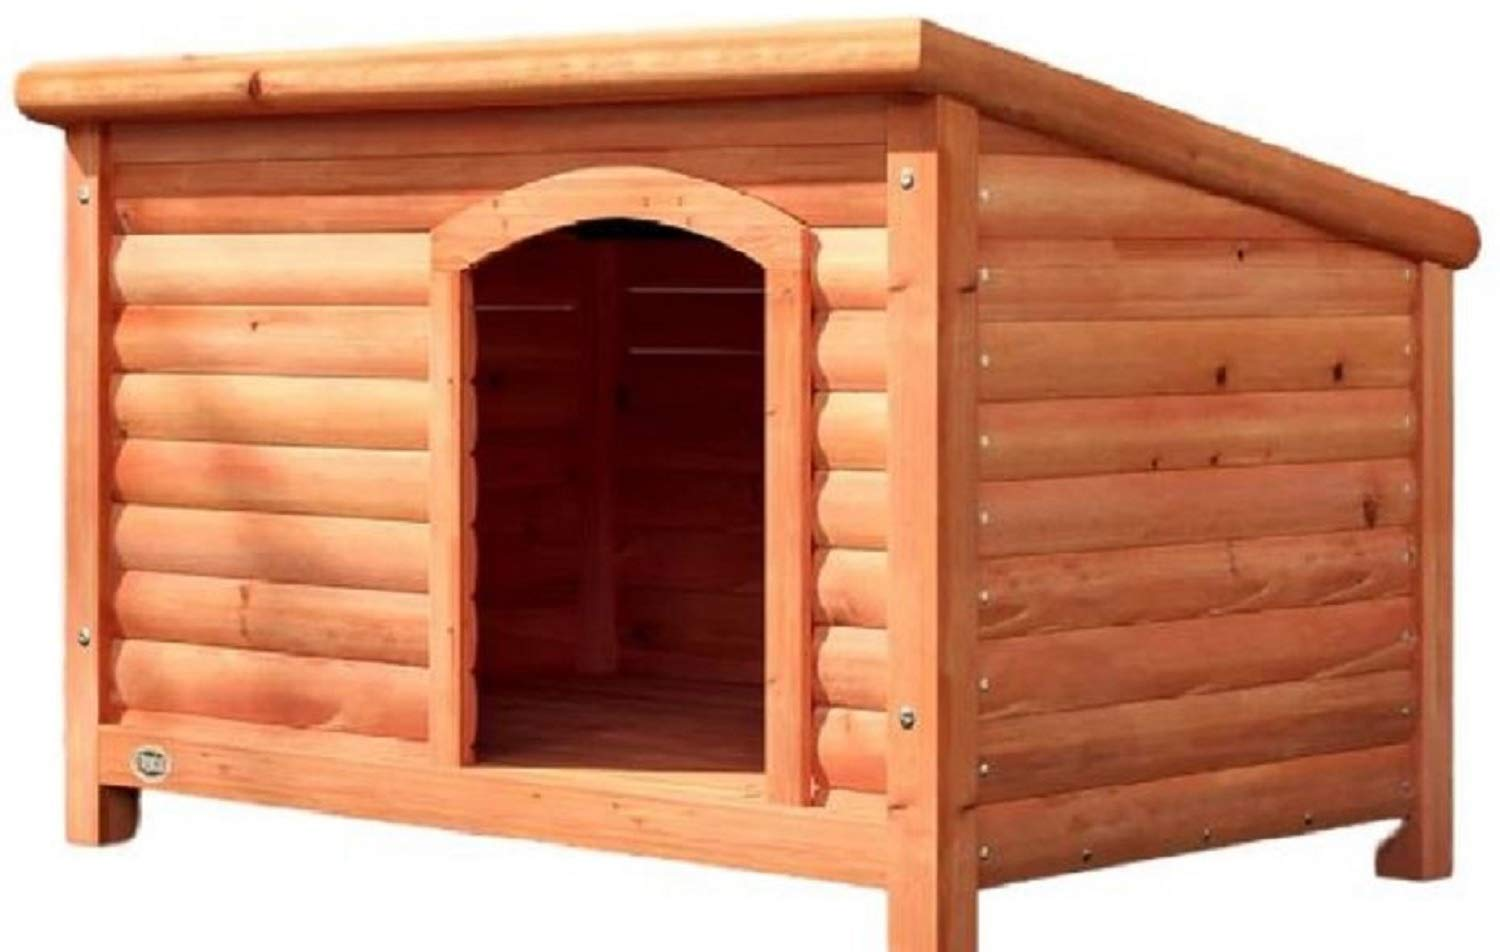 X- Large Dog Wood House. Lucien Club Dog Wood House Weather Resistant with Elevated Floor (X- Large)